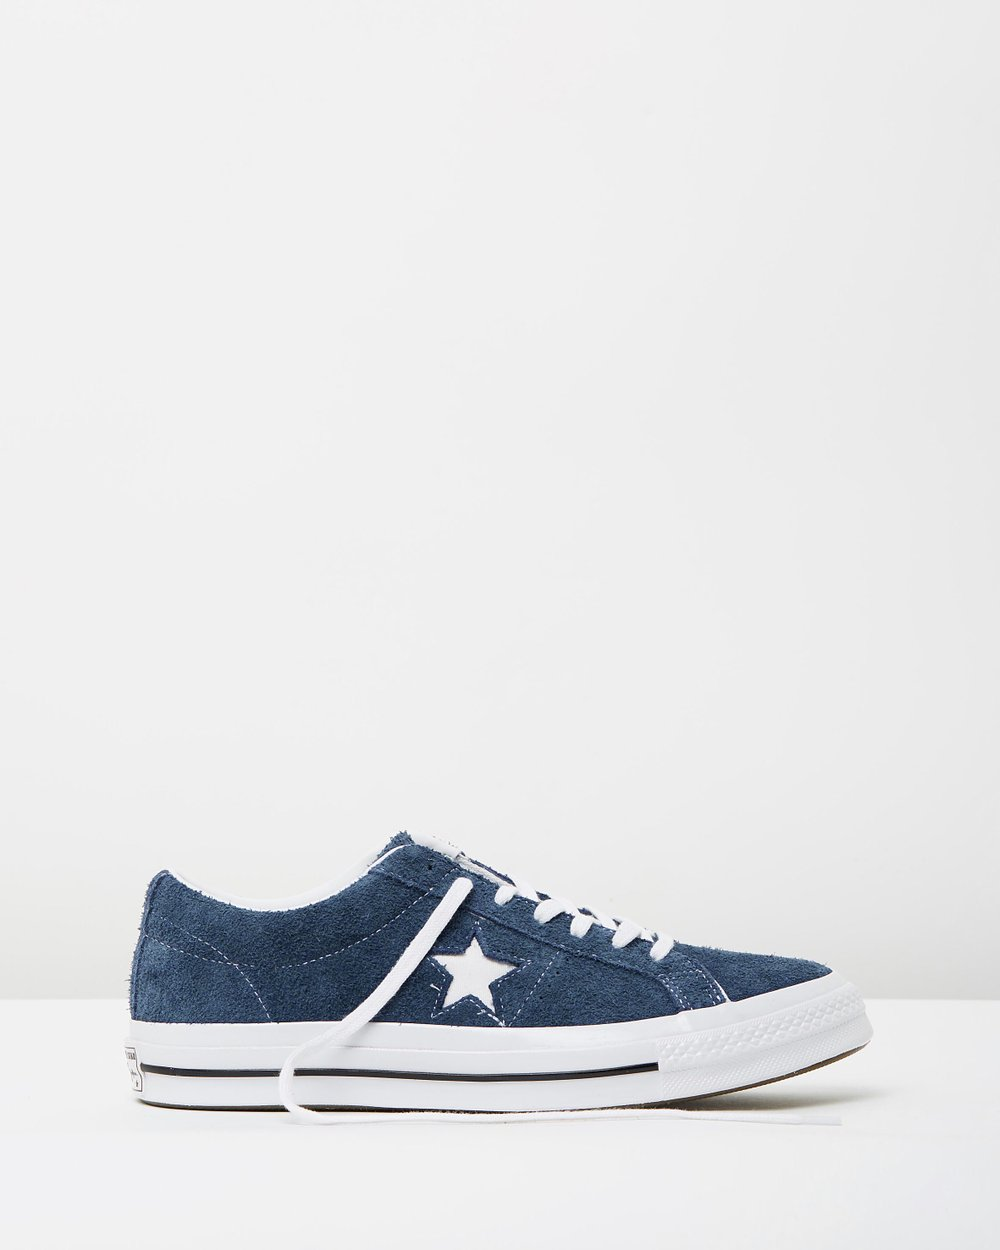 cc64fb911989f4 One Star - Unisex by Converse Online